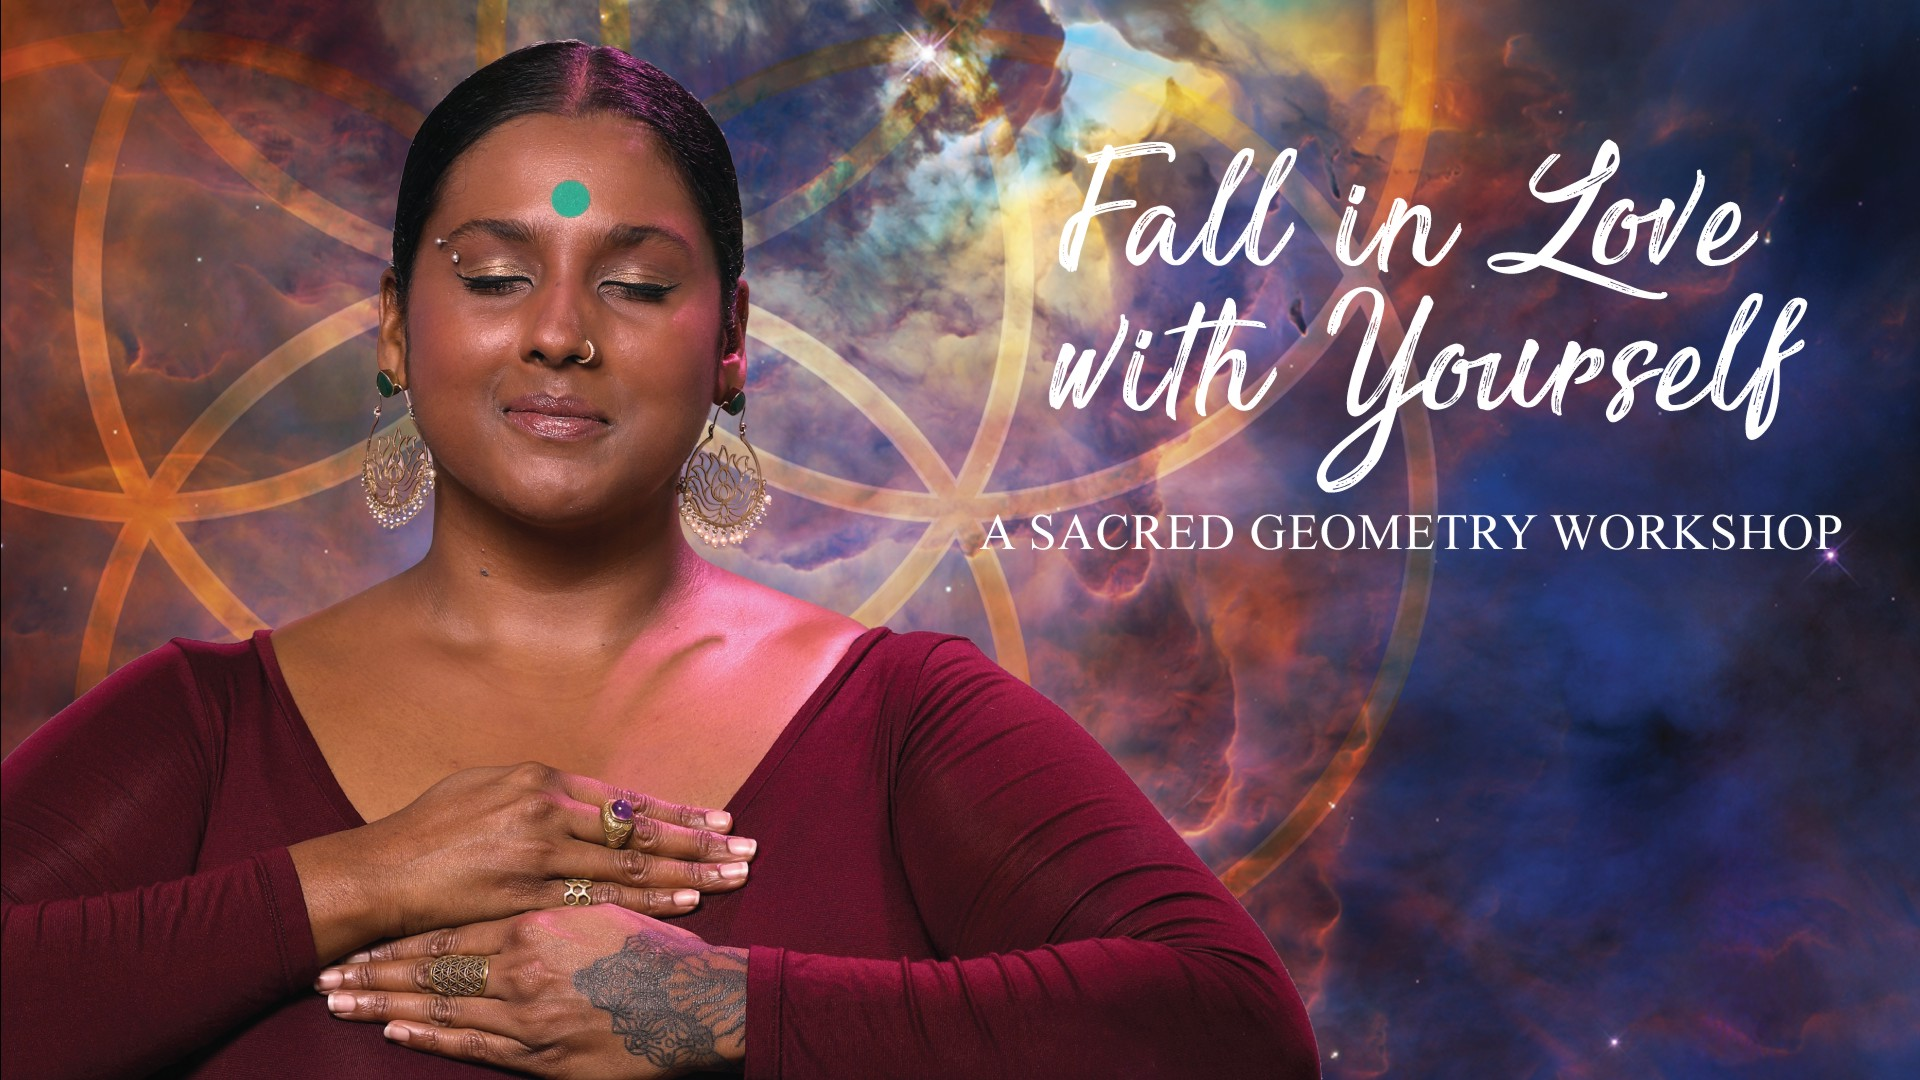 11 05 2019 - FALL IN LOVE WITH YOURSELF: A SACRED GEOMETRY